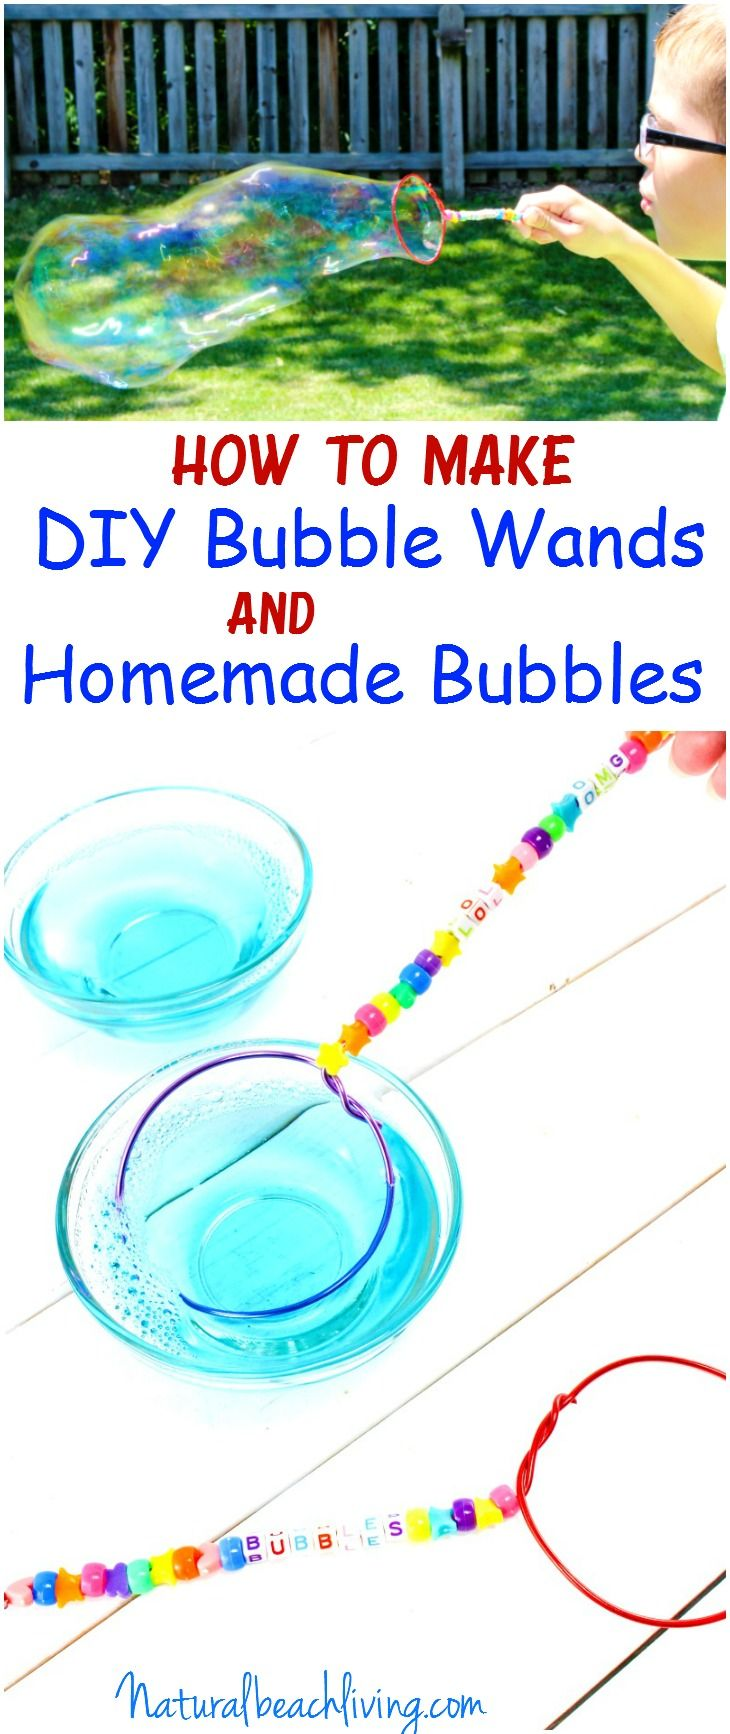 How To Make Diy Bubble Wands Homemade Bubbles Summer